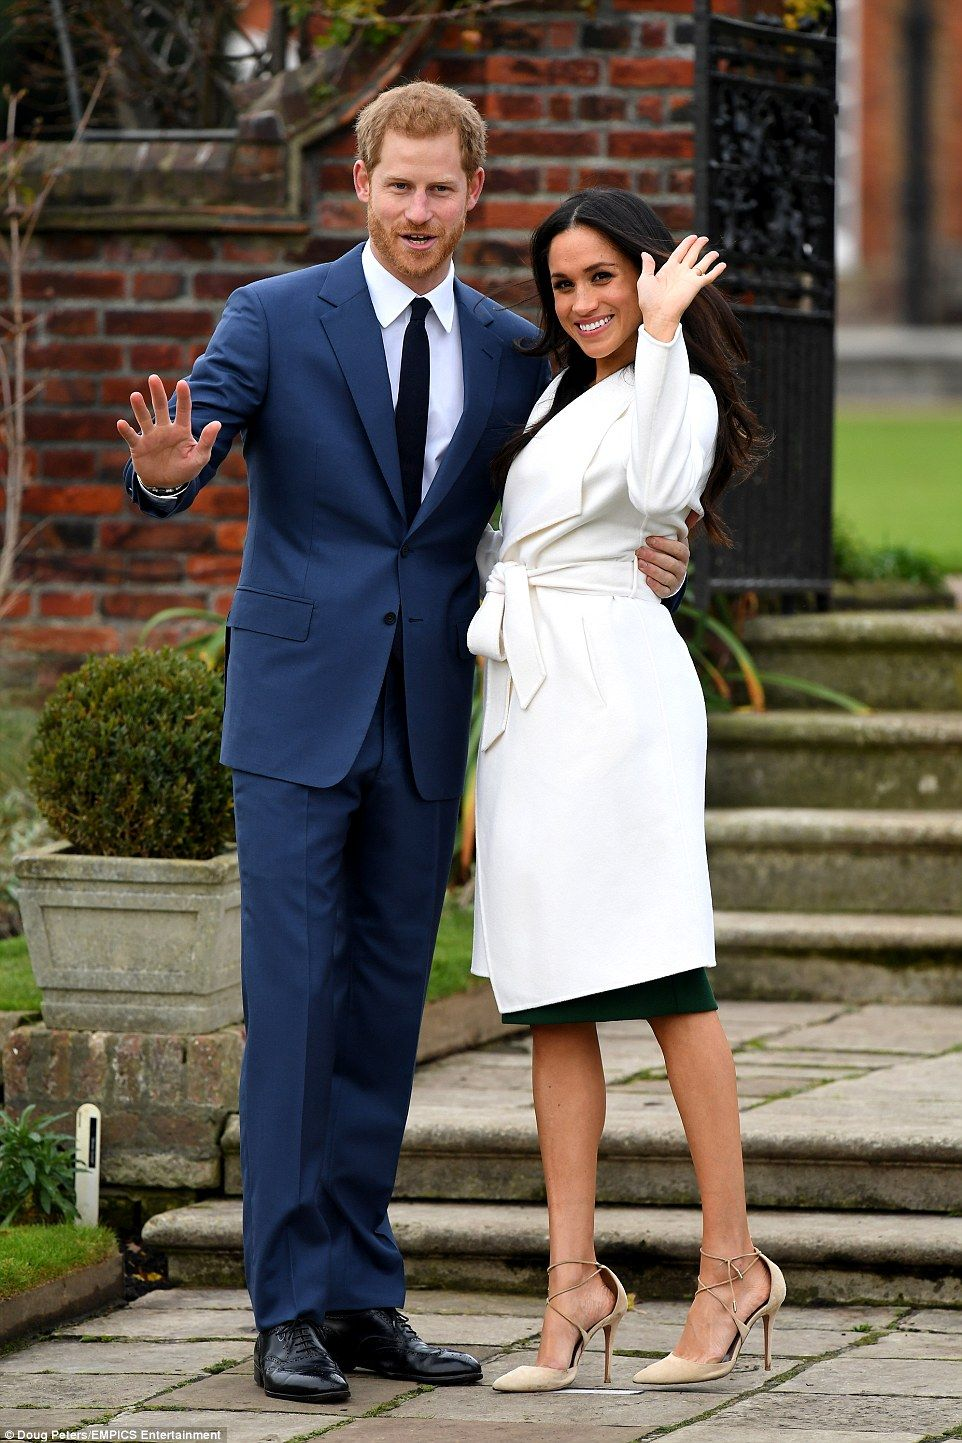 Meghan looked resplendent in a chic belted white coat dress and vertiginous heels as she c...